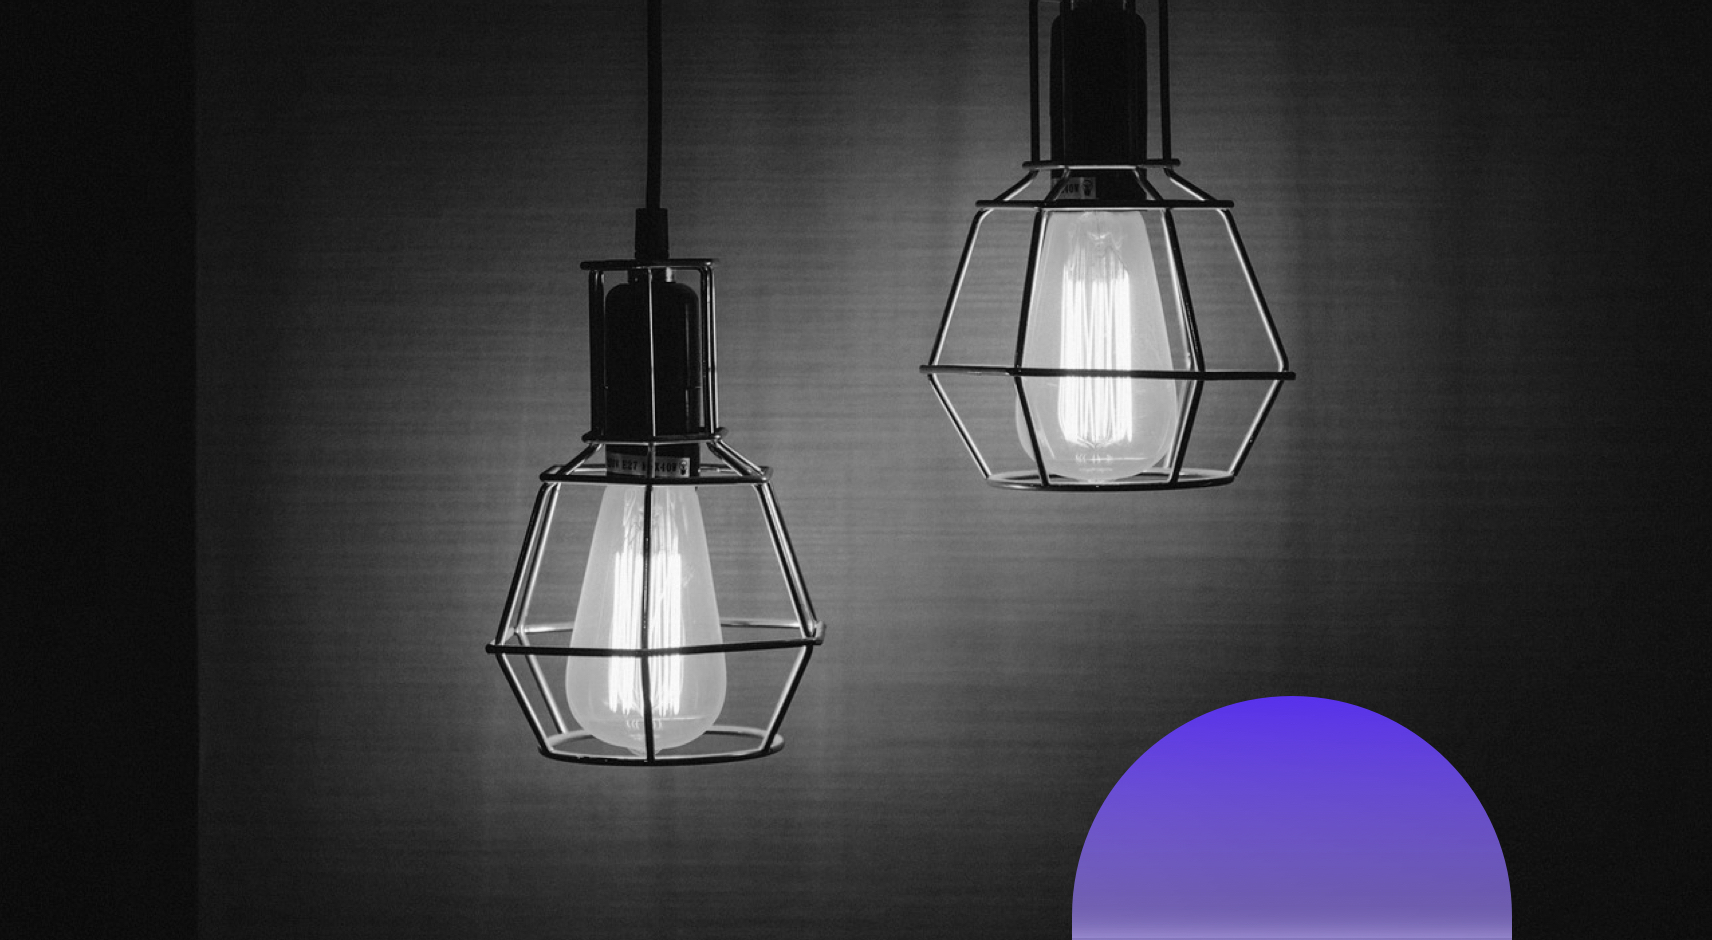 Commercial Lighting SaaS: What to Look For